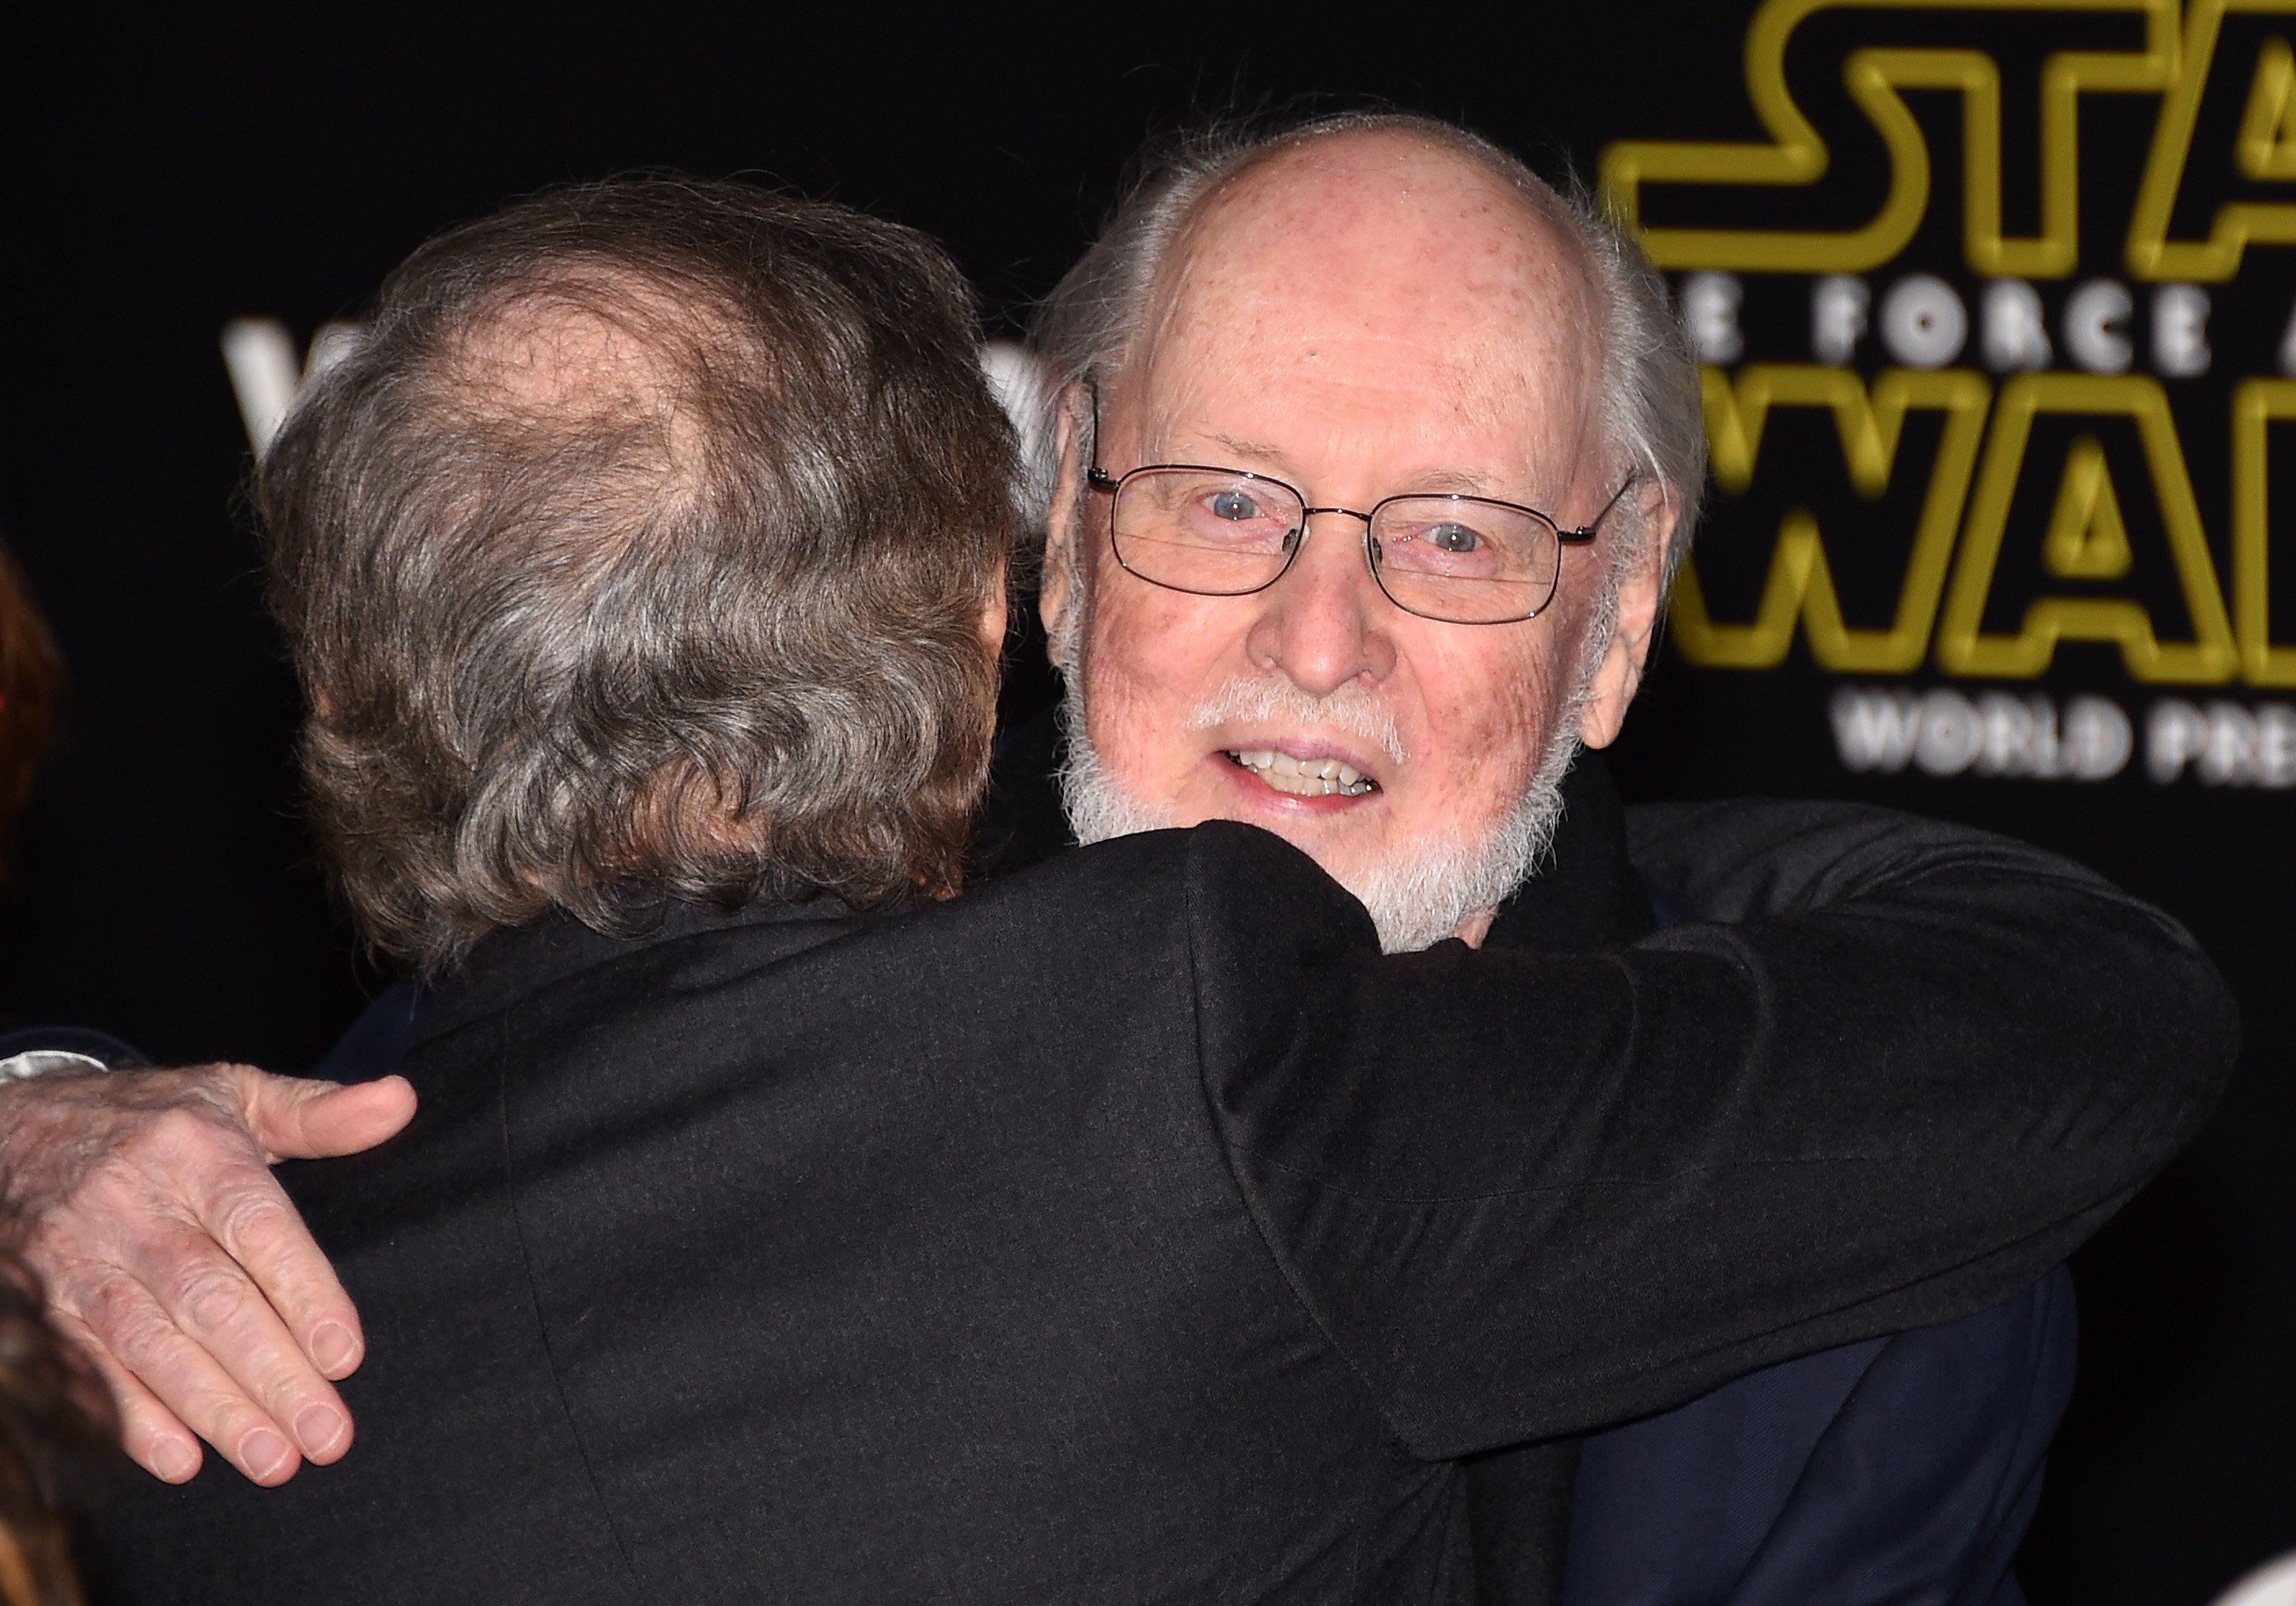 HOLLYWOOD, CA - DECEMBER 14:  Filmmaker Steven Spielberg (L) hugs composer John Williams as they attend the premiere of Walt Disney Pictures and Lucasfilm's 'Star Wars: The Force Awakens' at the Dolby Theatre on December 14, 2015 in Hollywood, California.  (Photo by Ethan Miller/Getty Images)